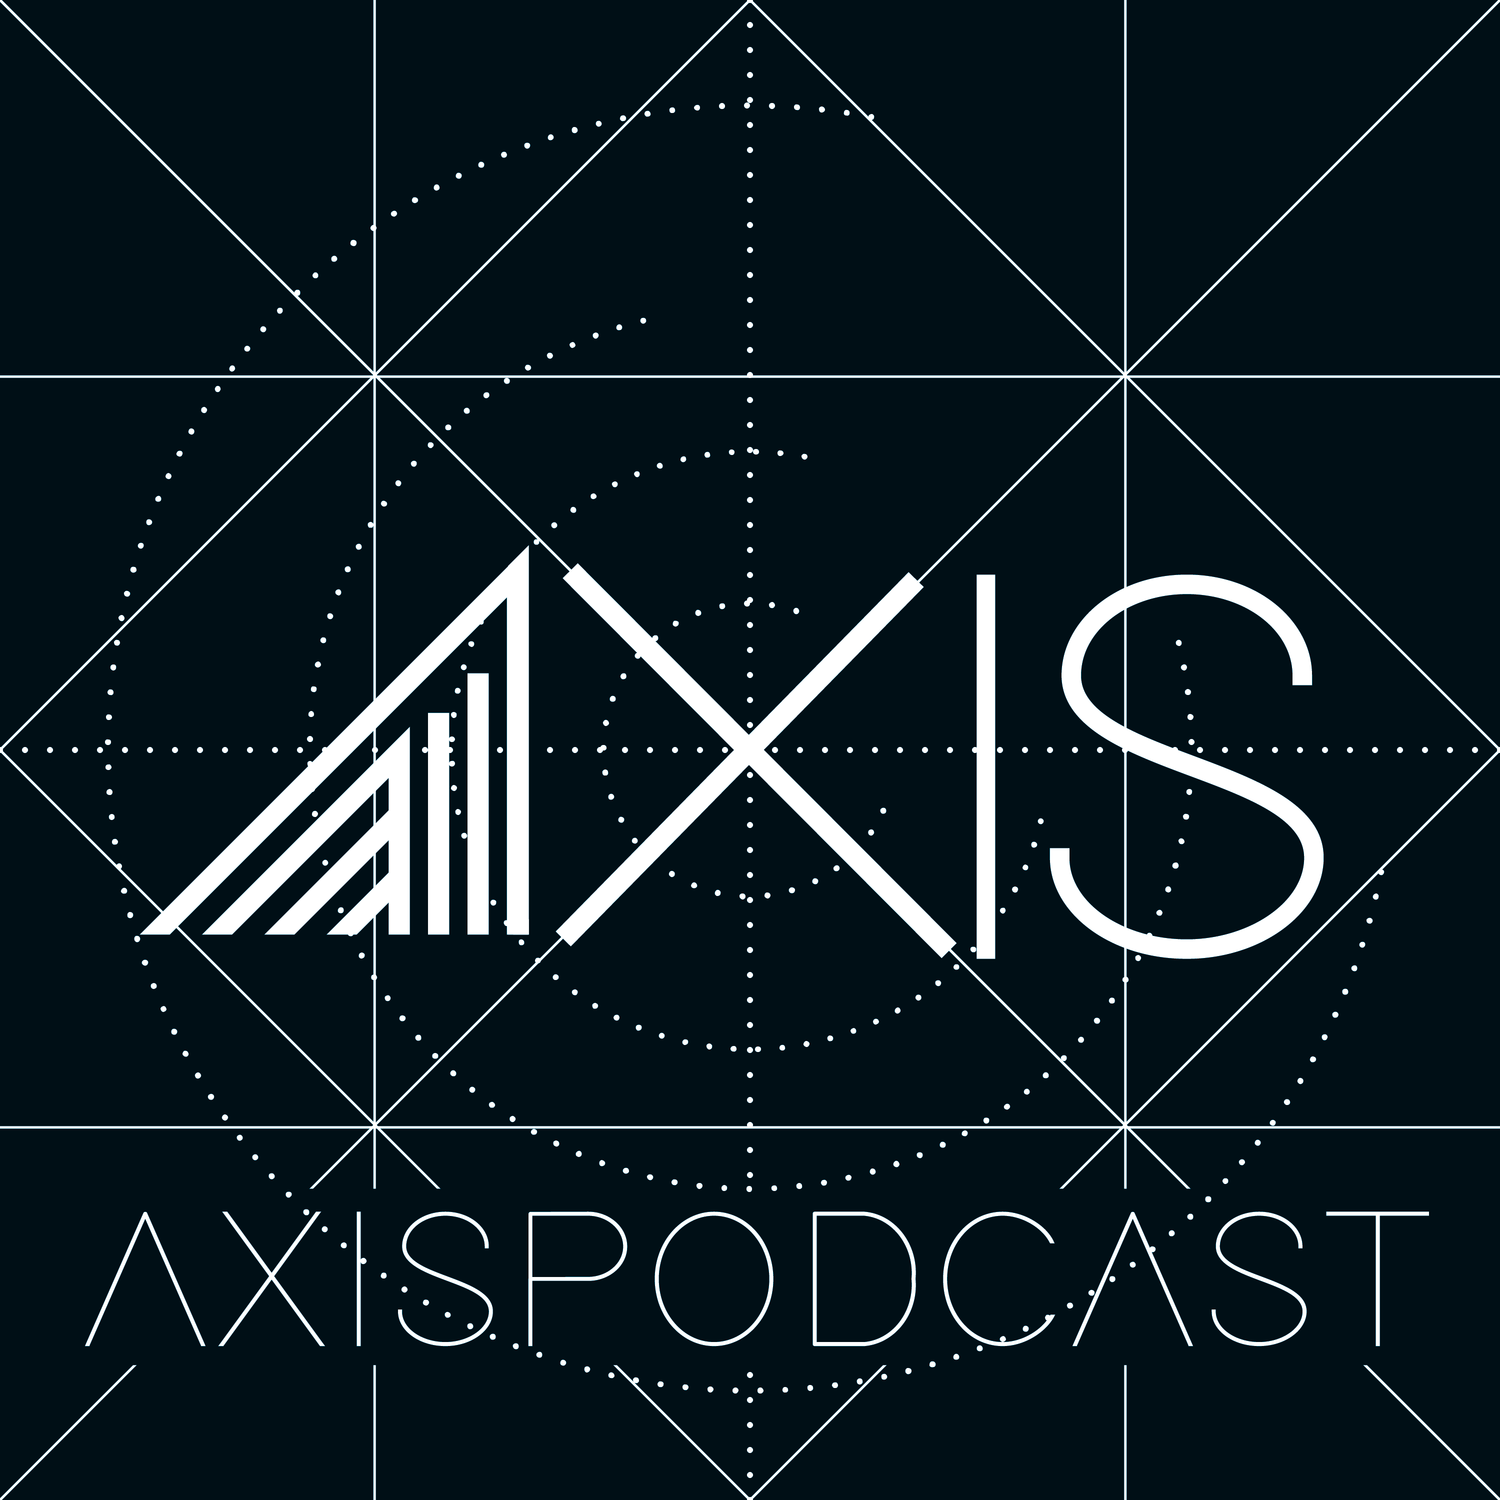 AxisPodcast